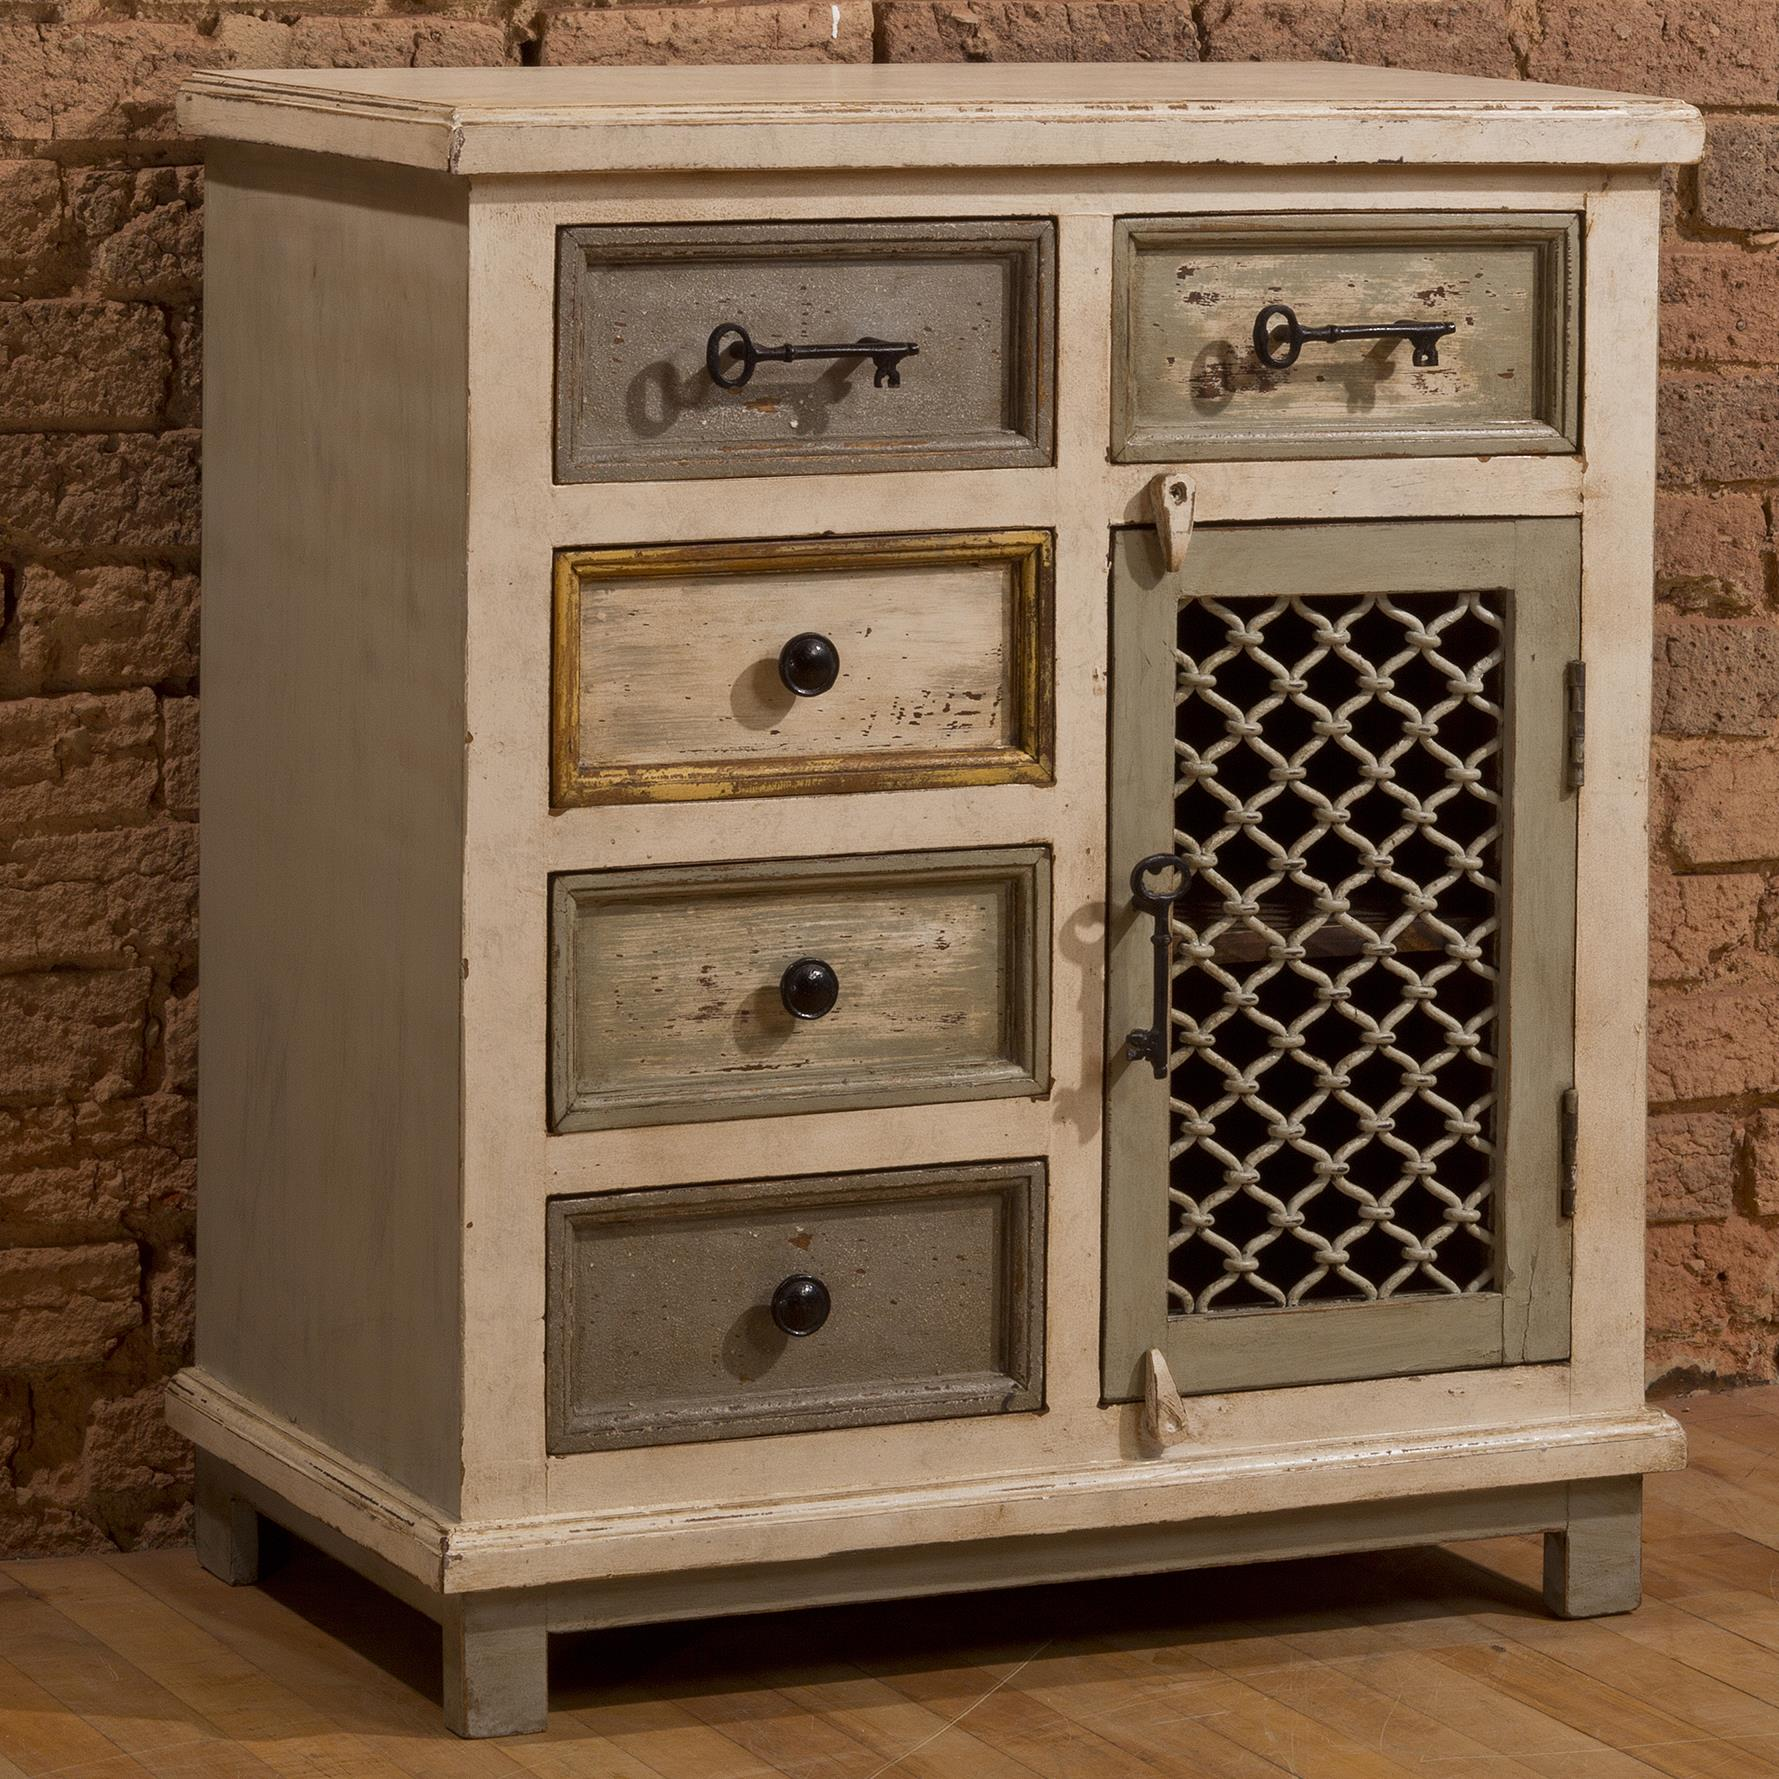 Hillsdale Accents Occasional Cabinet - Item Number: 5732-886